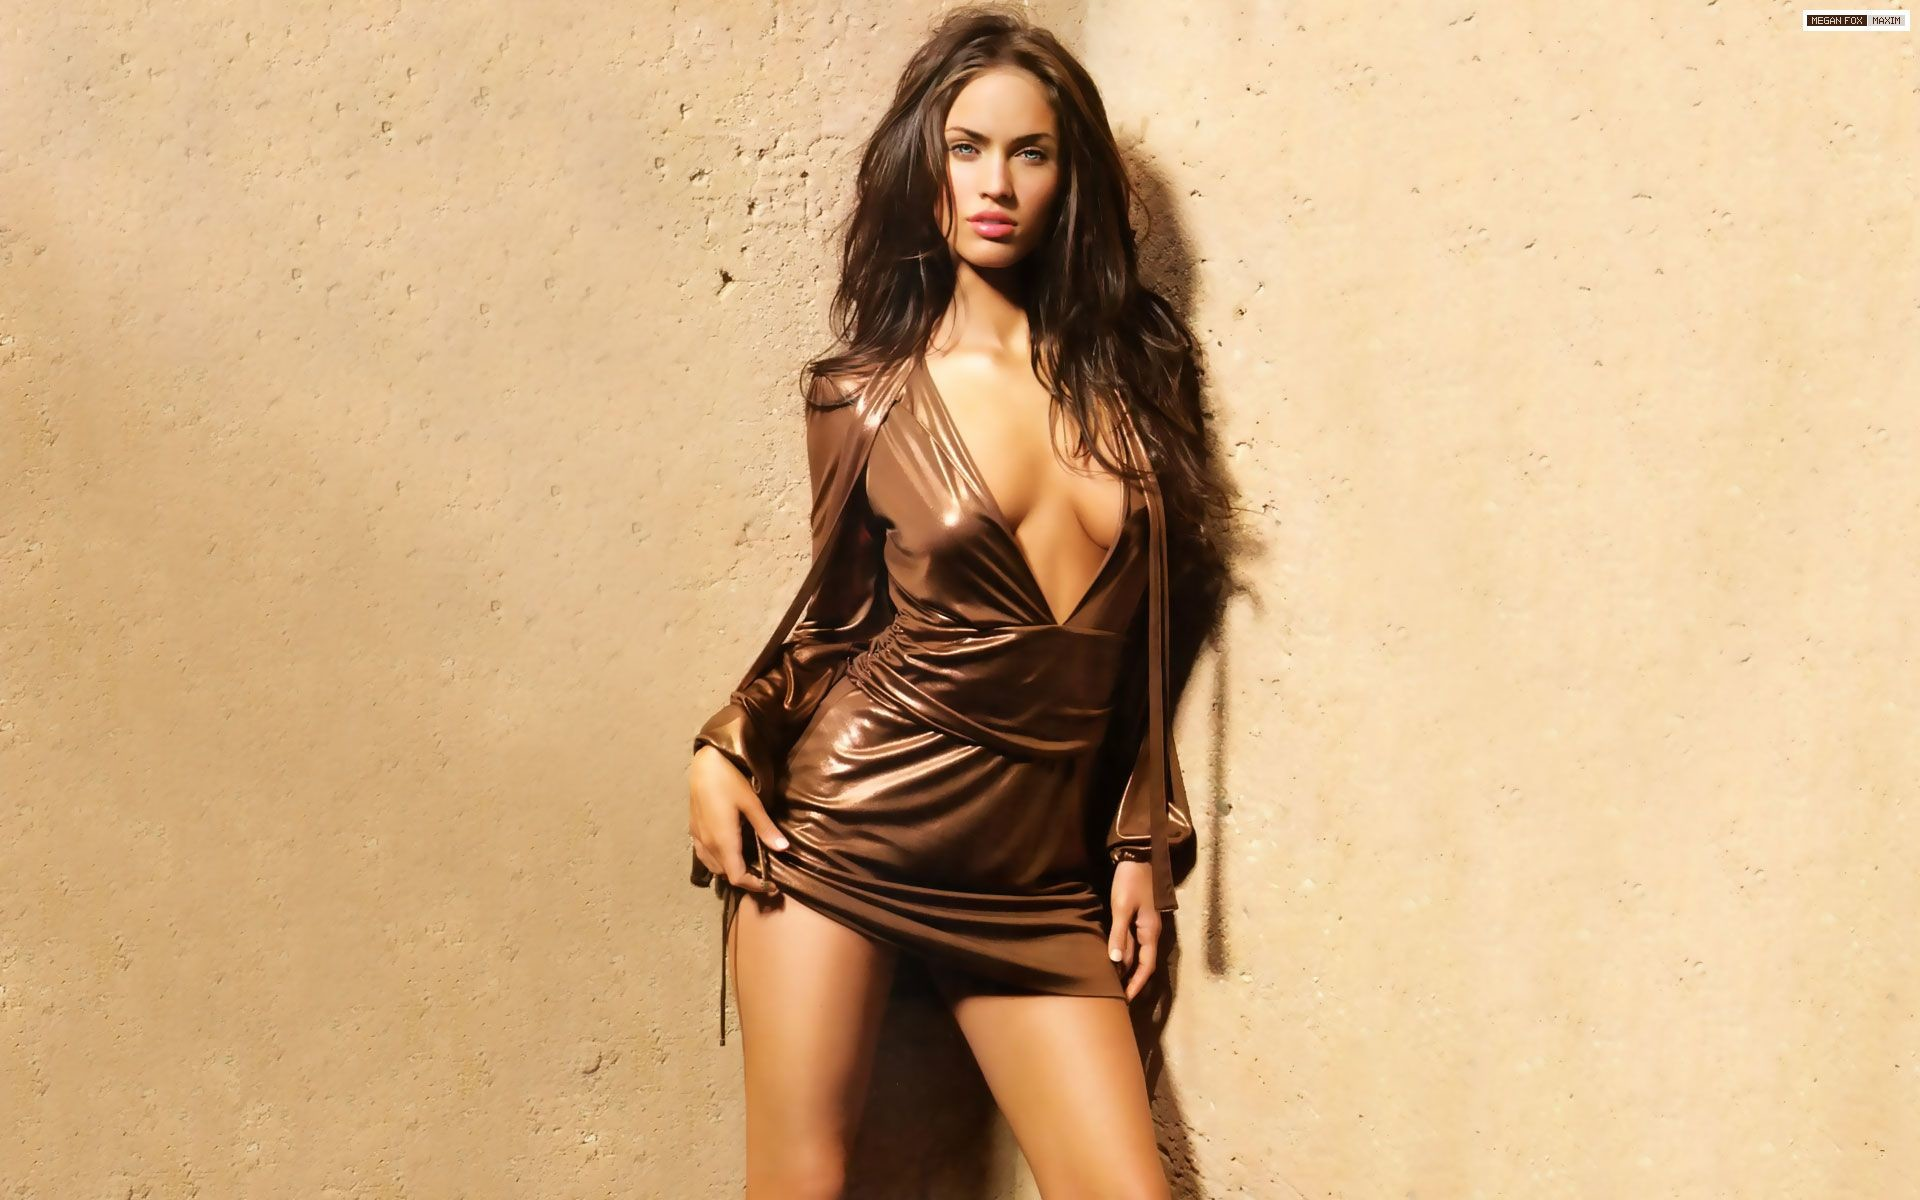 100 best Megan Fox images on Pinterest | Foxes, Megan fox style and  Beautiful people